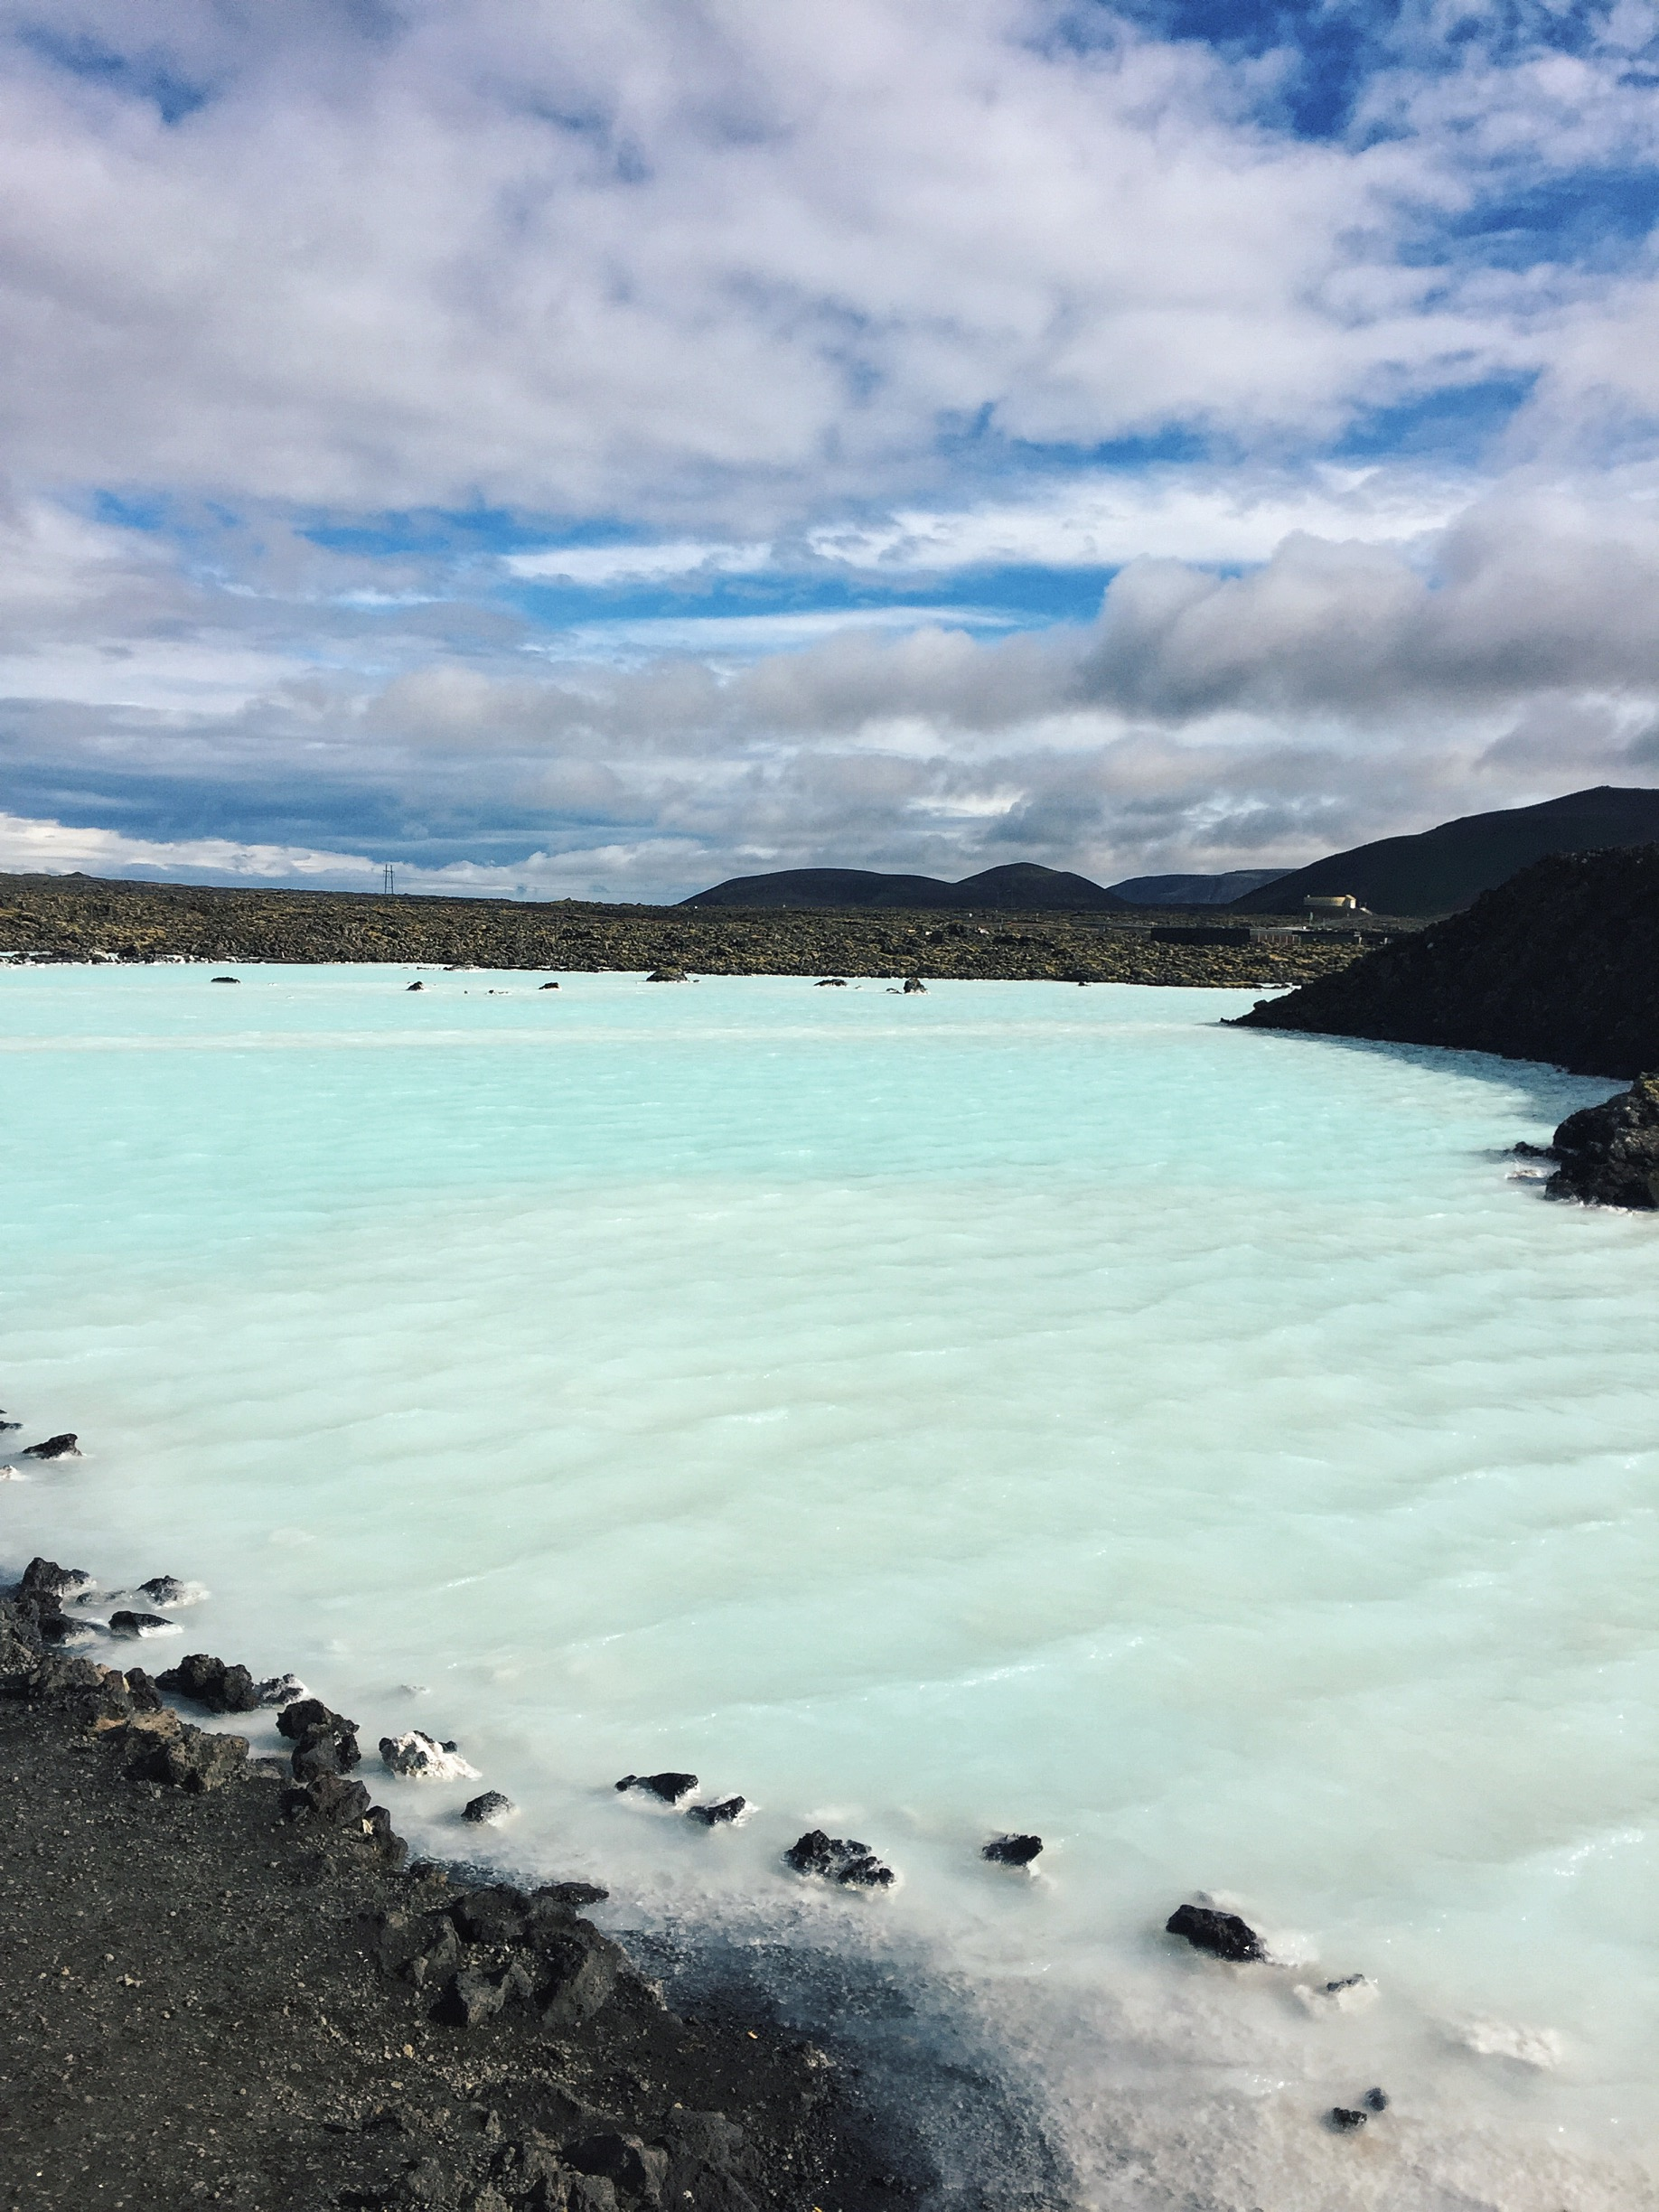 So close to the Blue Lagoon!